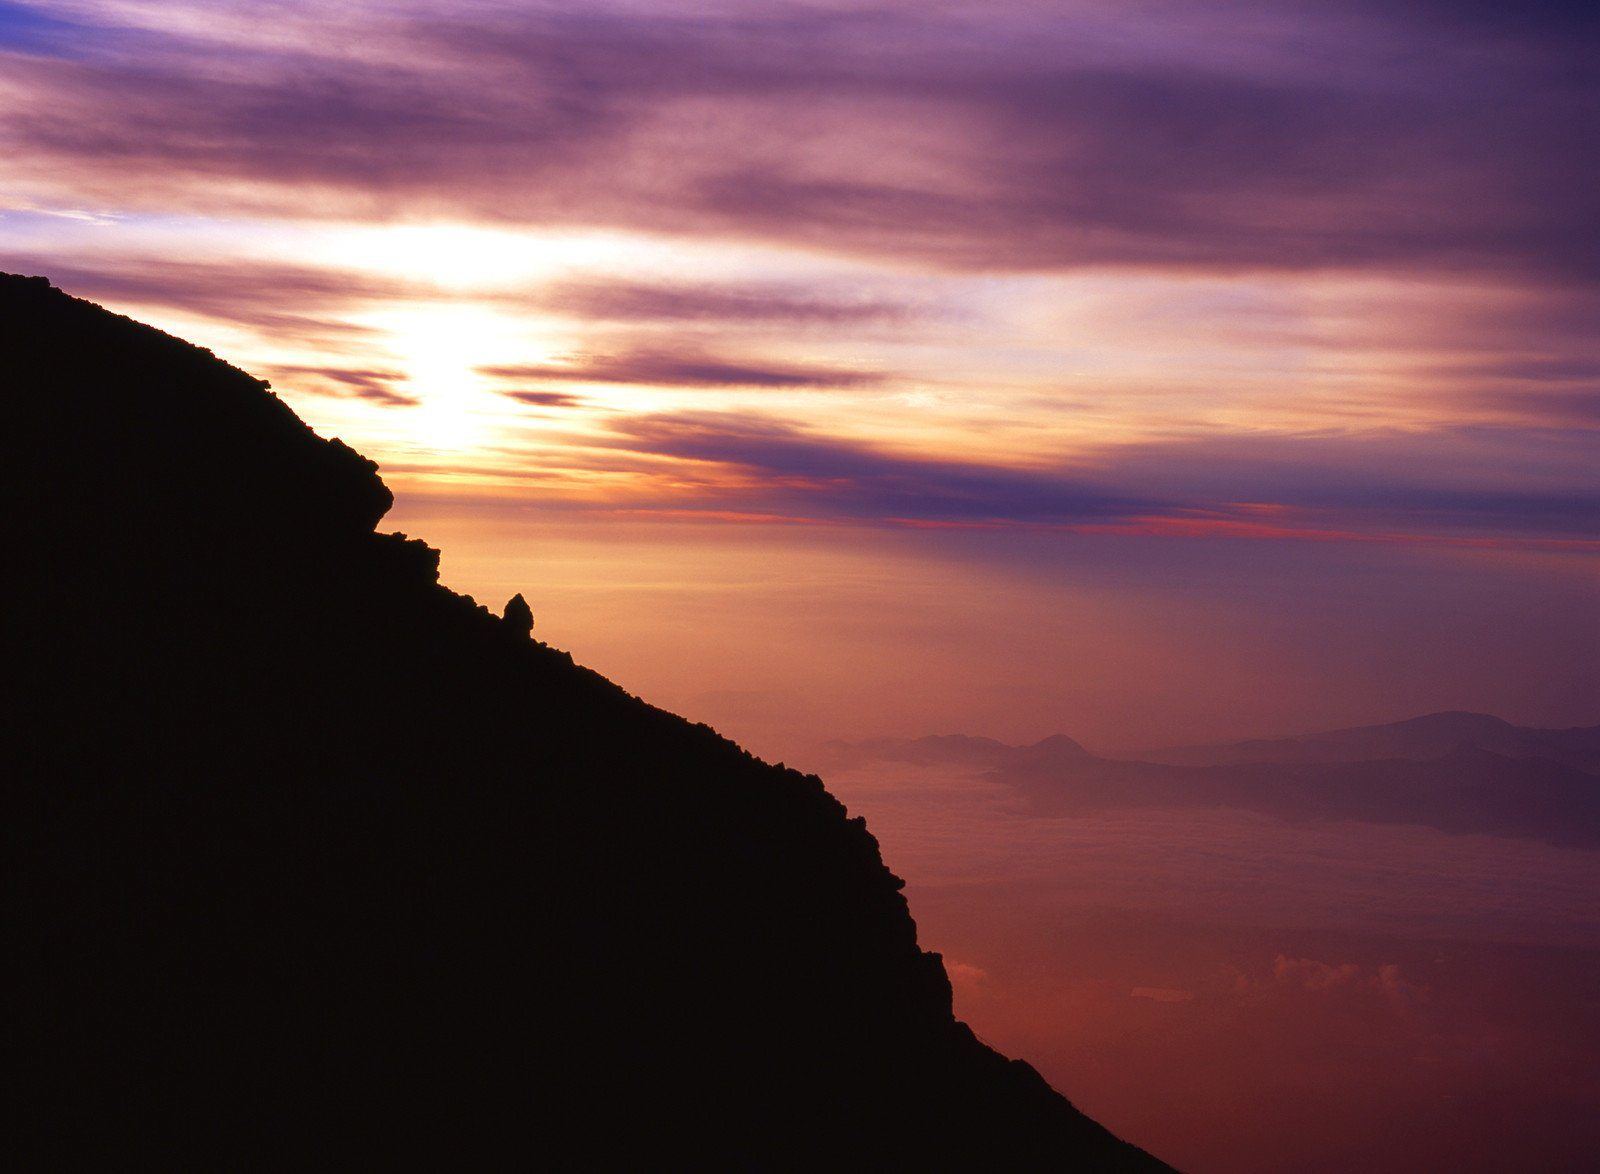 Sunrise Viewed from the Summit of Mt Fuji